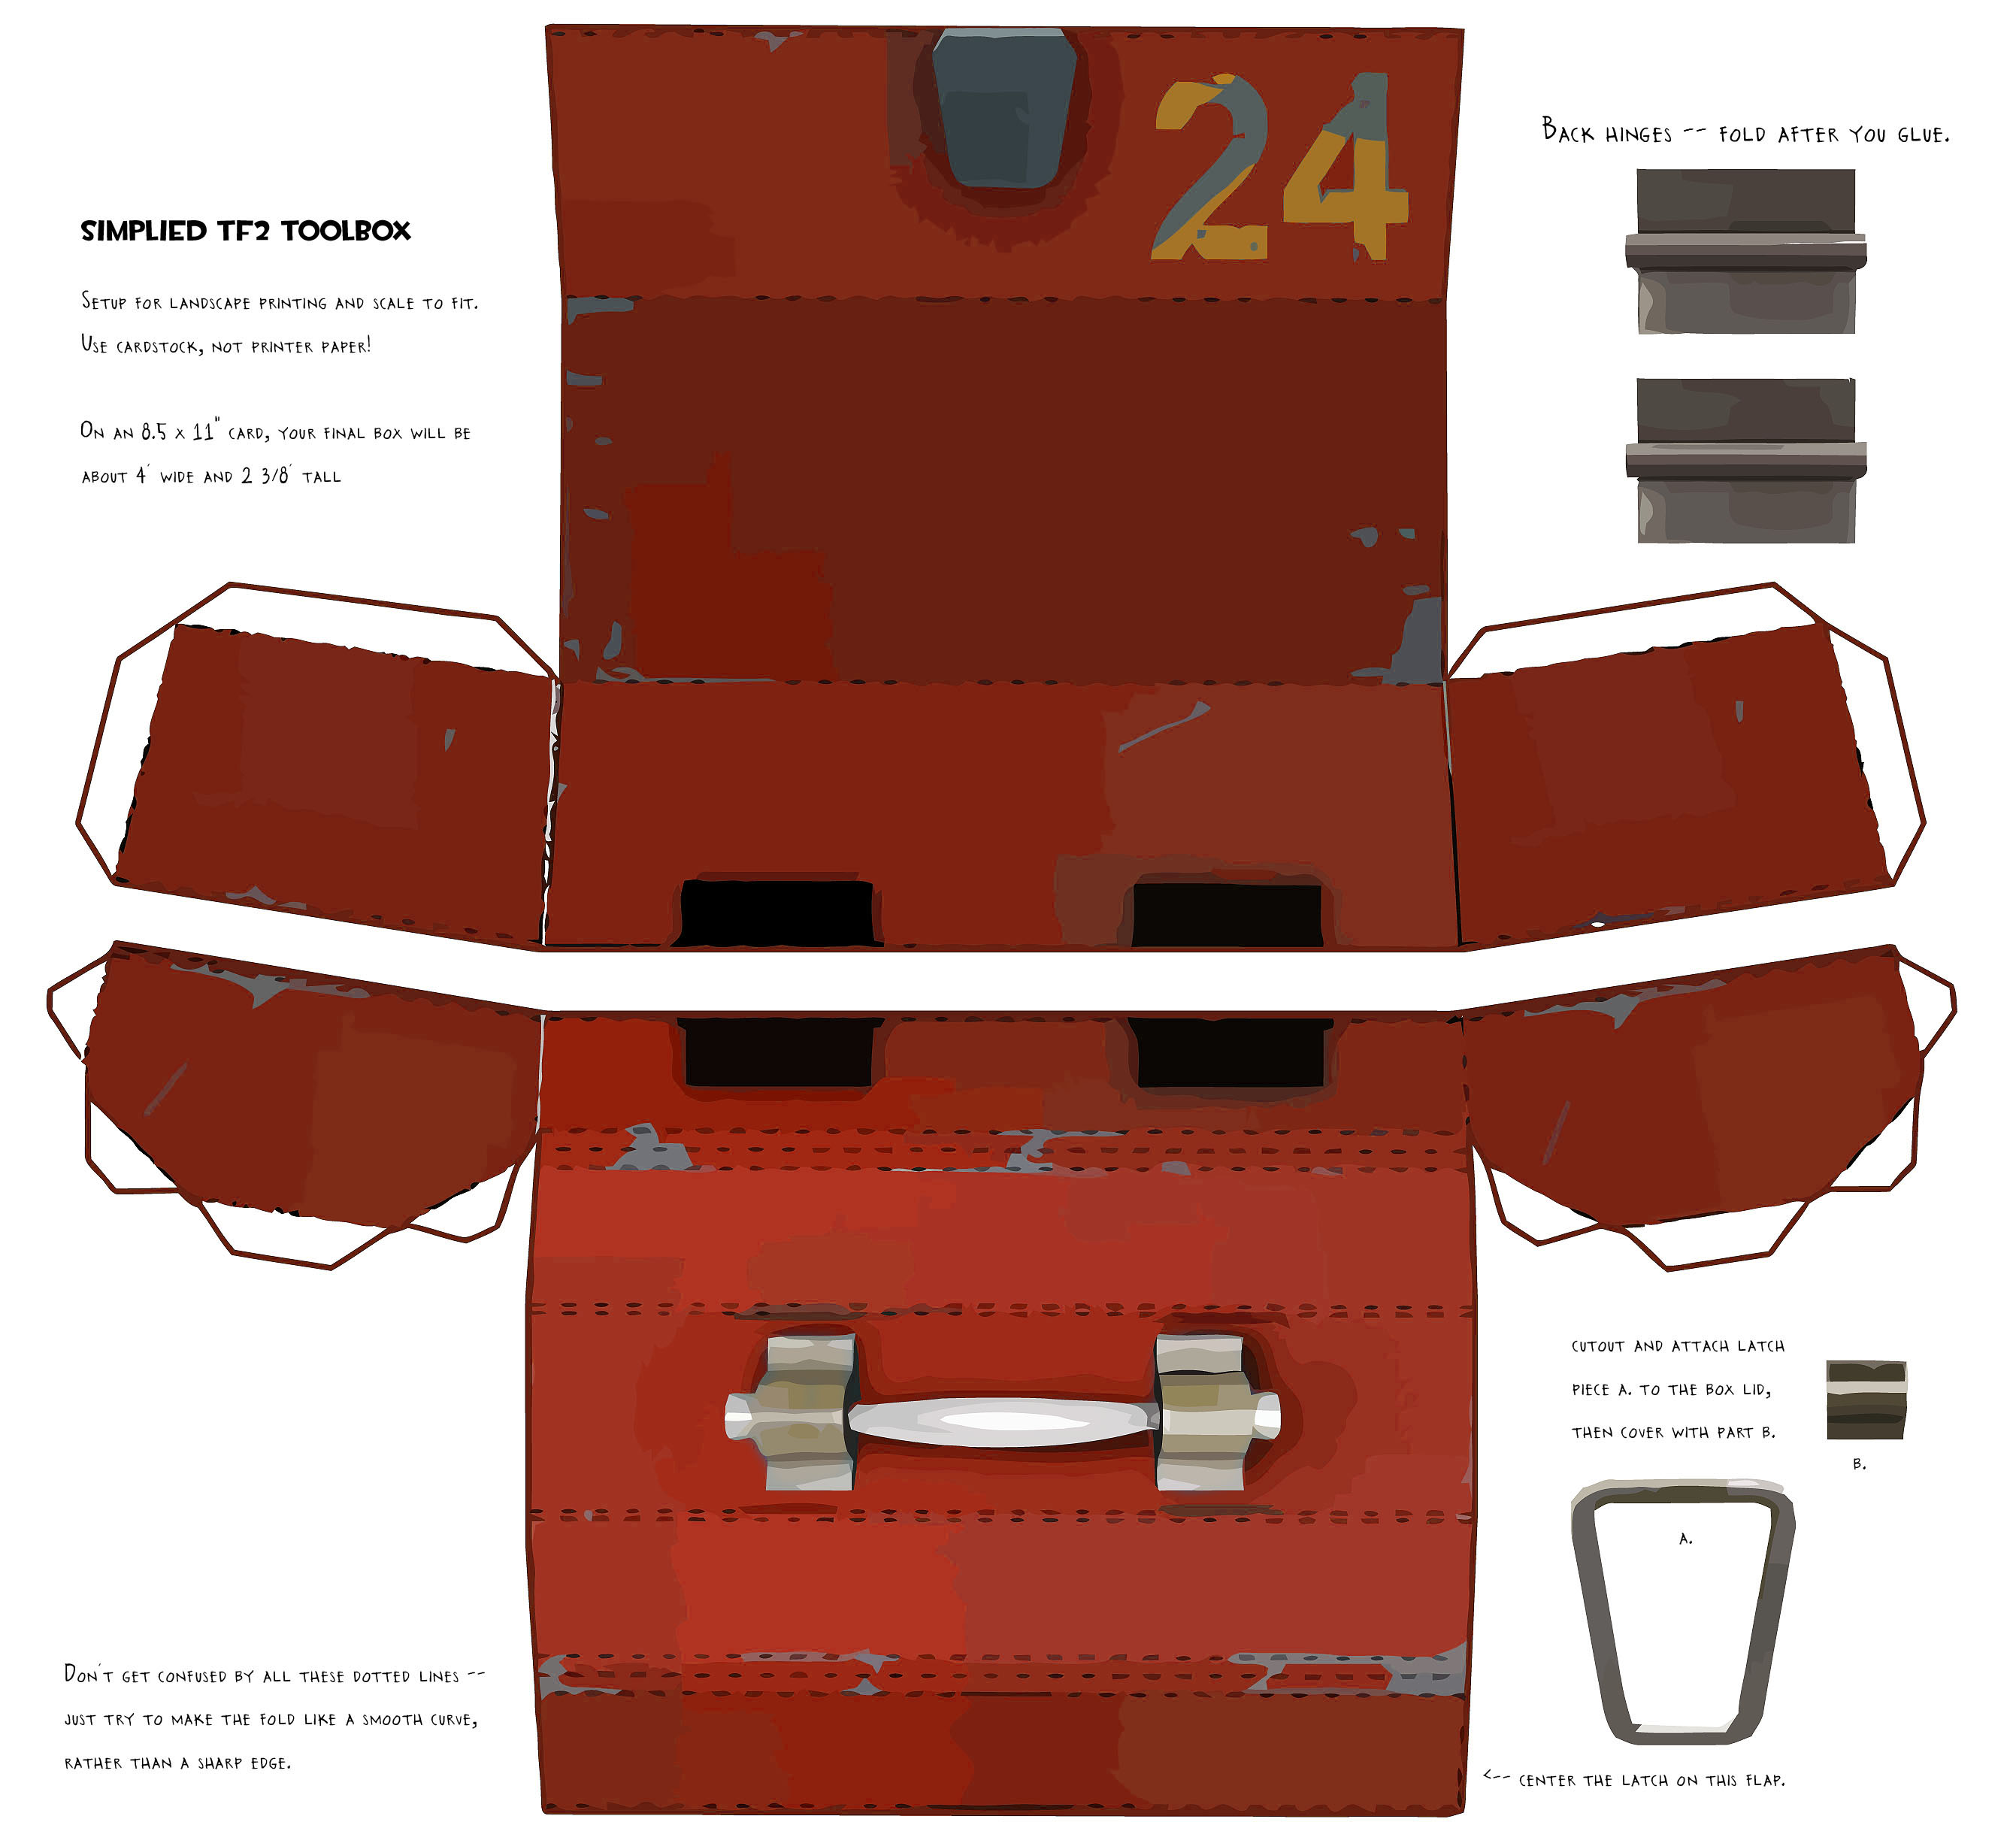 Tf2 papercraft red toolbox by propmedic on deviantart 3d tool free